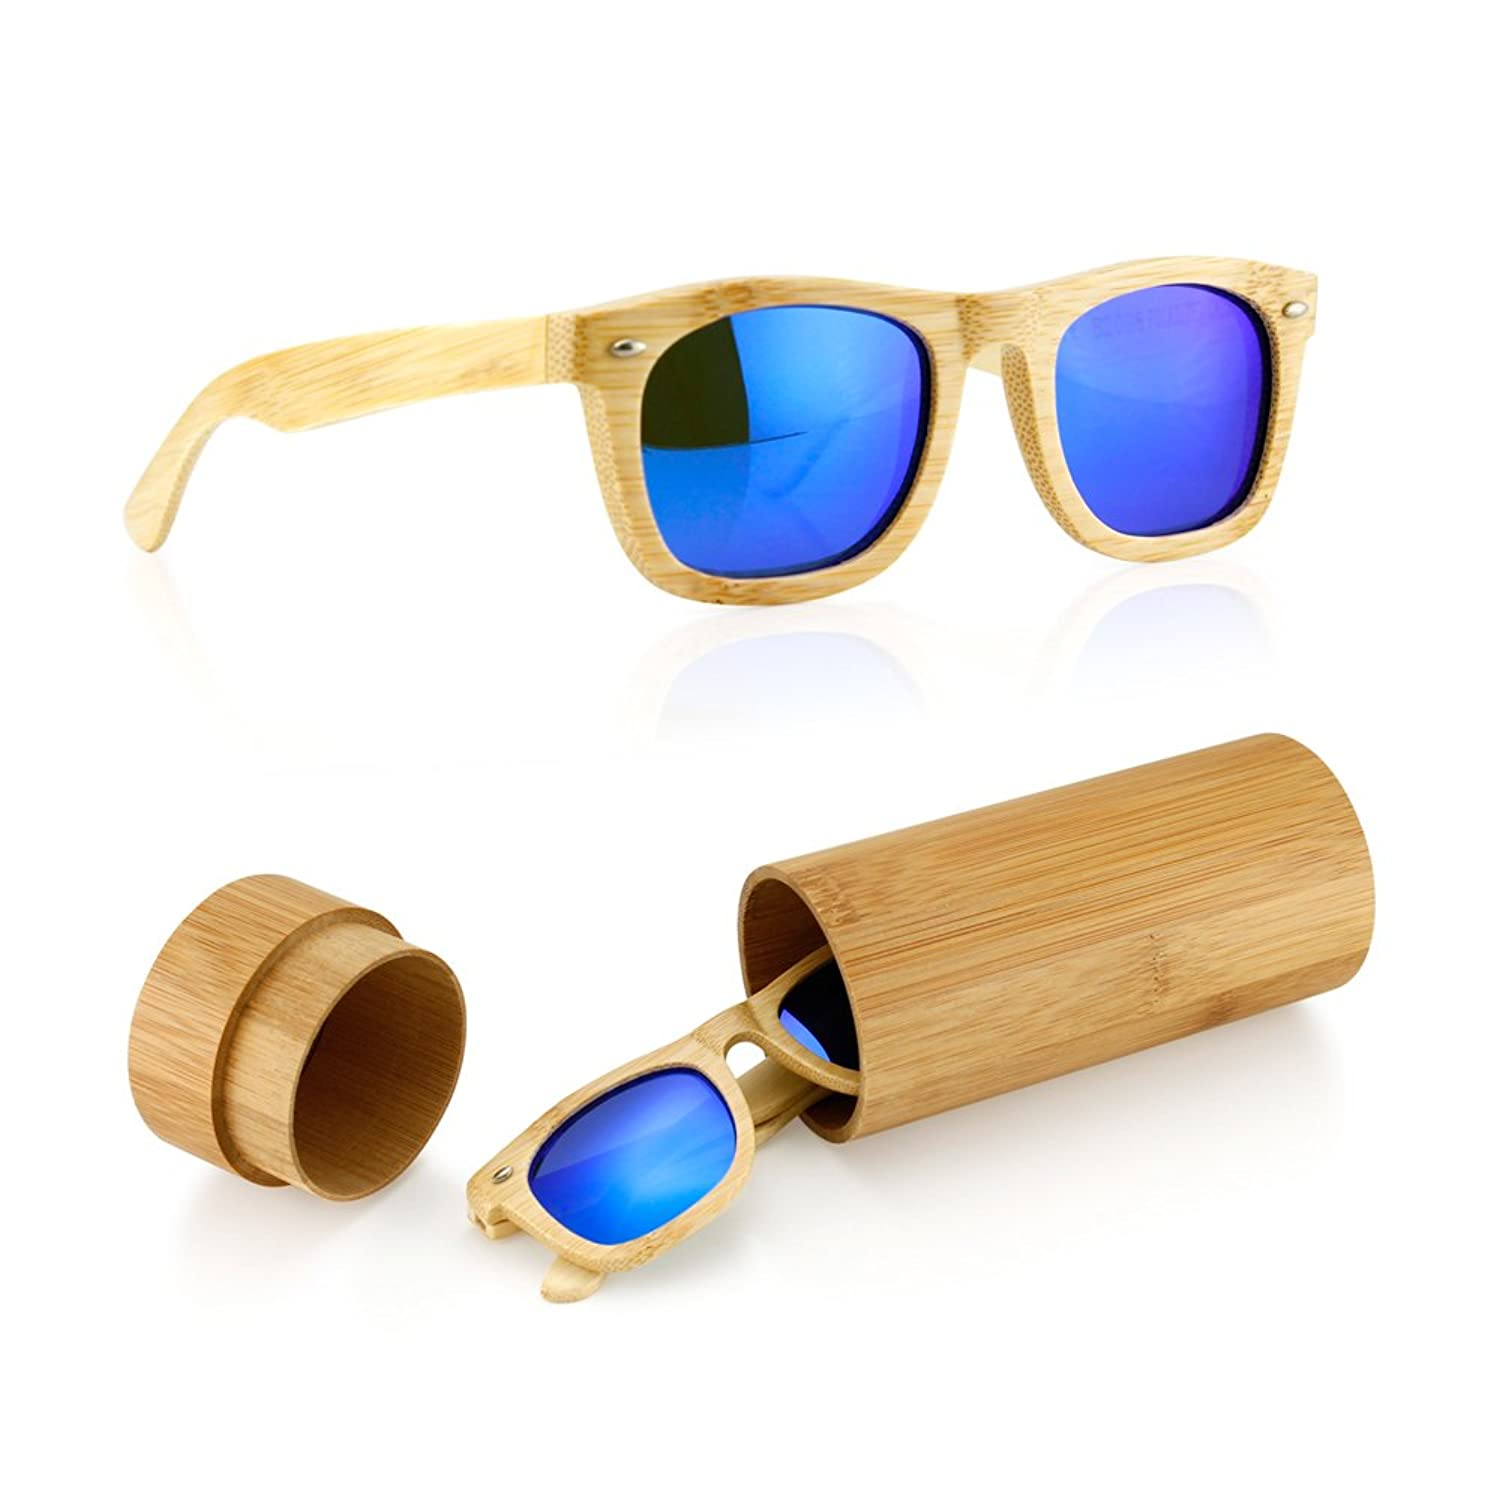 amazoncom gearonic tm polarized wood wooden mens womens bamboo vintage sunglasses eyewear with bamboo box blue clothing - Wooden Frame Glasses